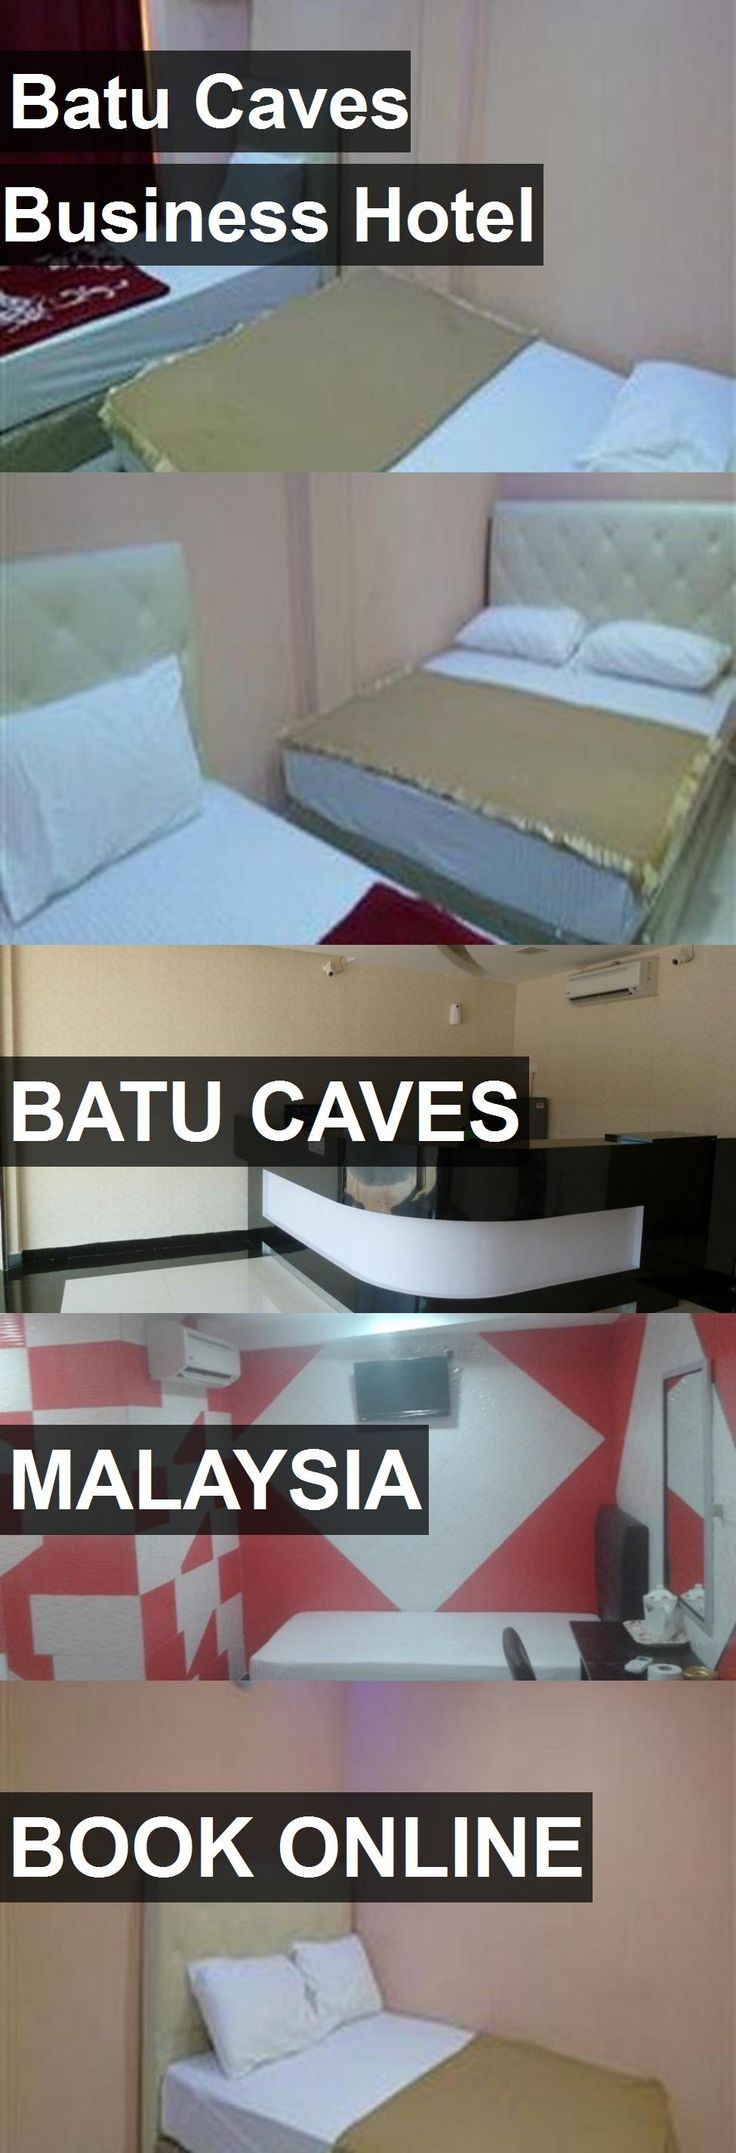 Batu Caves Business Hotel in Batu Caves, Malaysia. For more information, photos, reviews and best prices please follow the link. #Malaysia #BatuCaves #travel #vacation #hotel